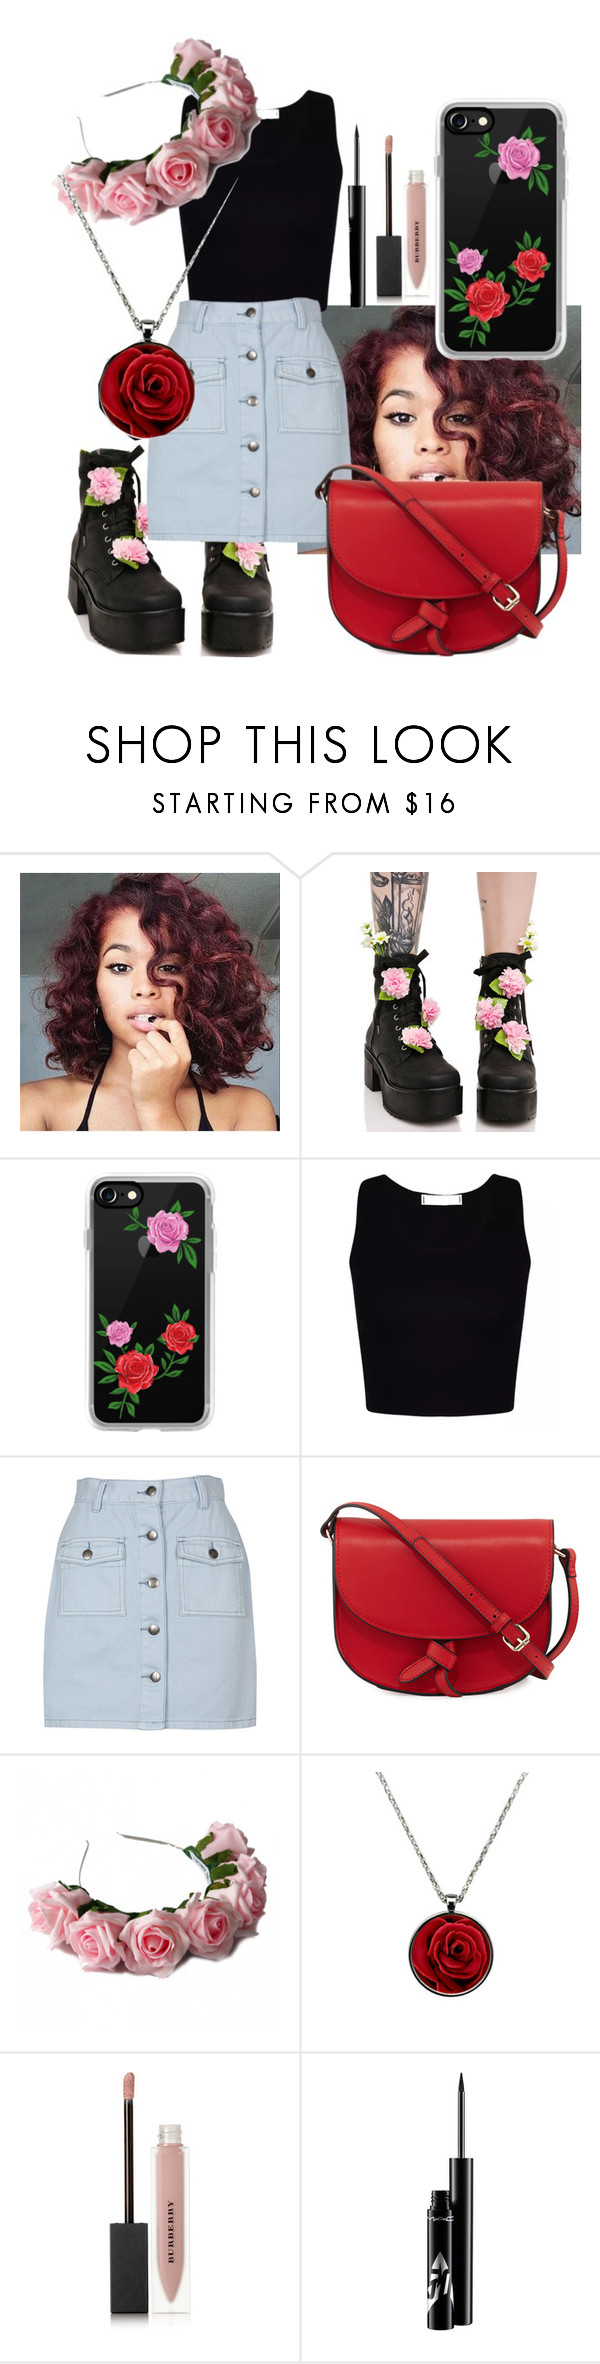 """""""Rose"""" by fashionxx1 ❤ liked on Polyvore featuring Sugarbaby, Casetify, MINKPINK, KC Jagger, Zara Taylor and Burberry"""